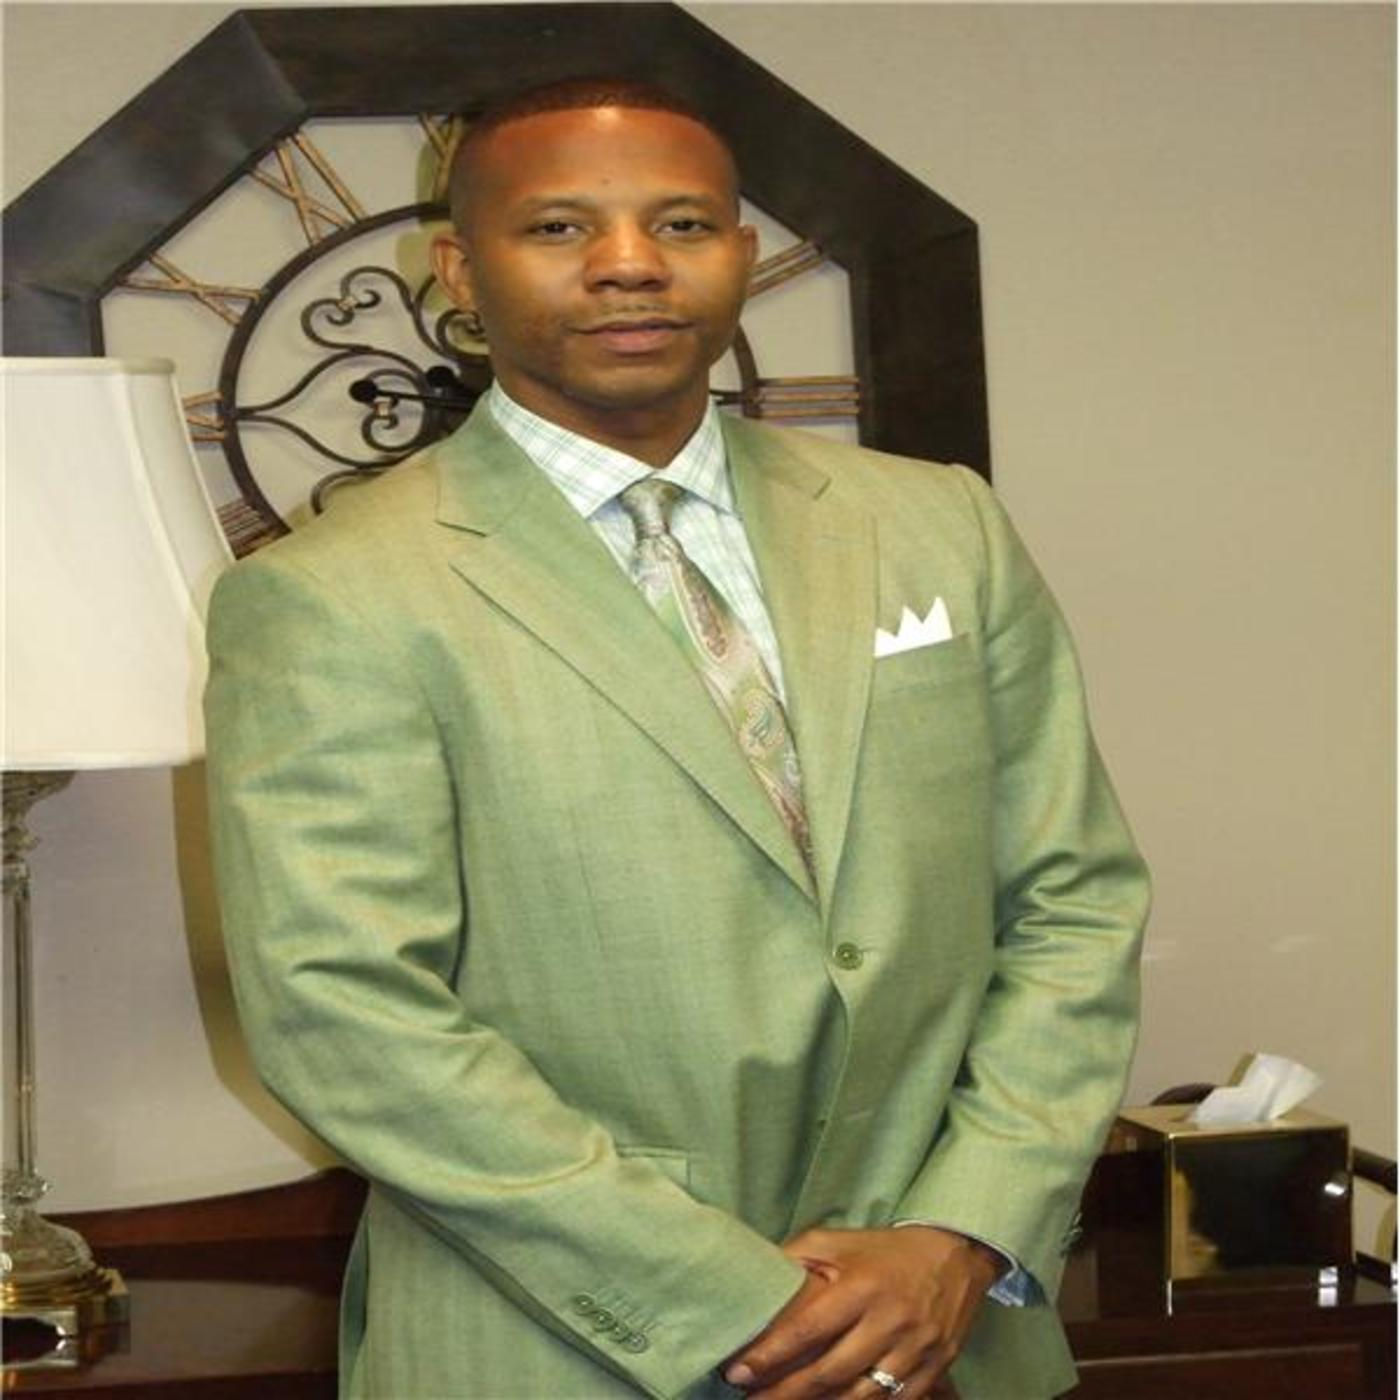 Kingdom Business with Pastor Hakeem J. Webb